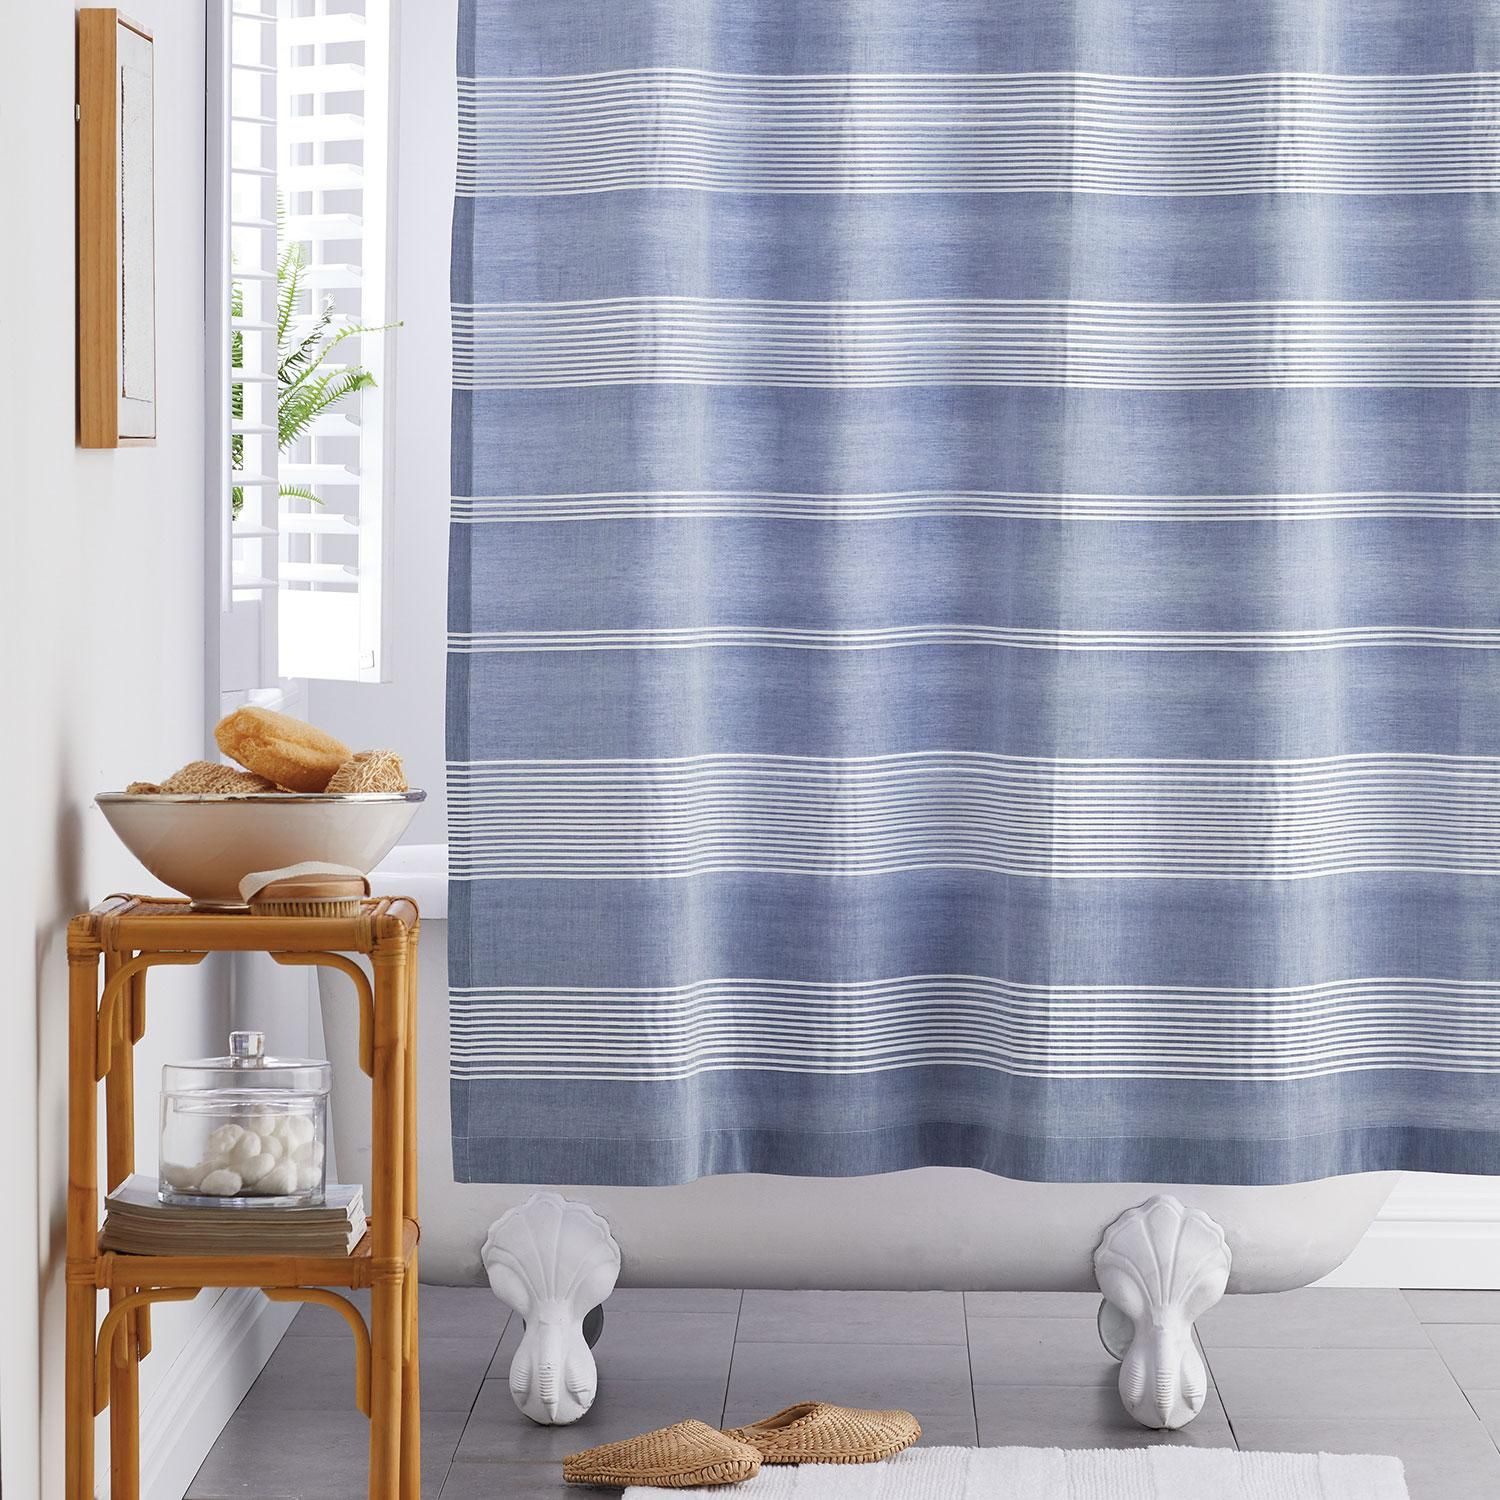 Chambray Stripe Shower Curtain The Company Store Striped